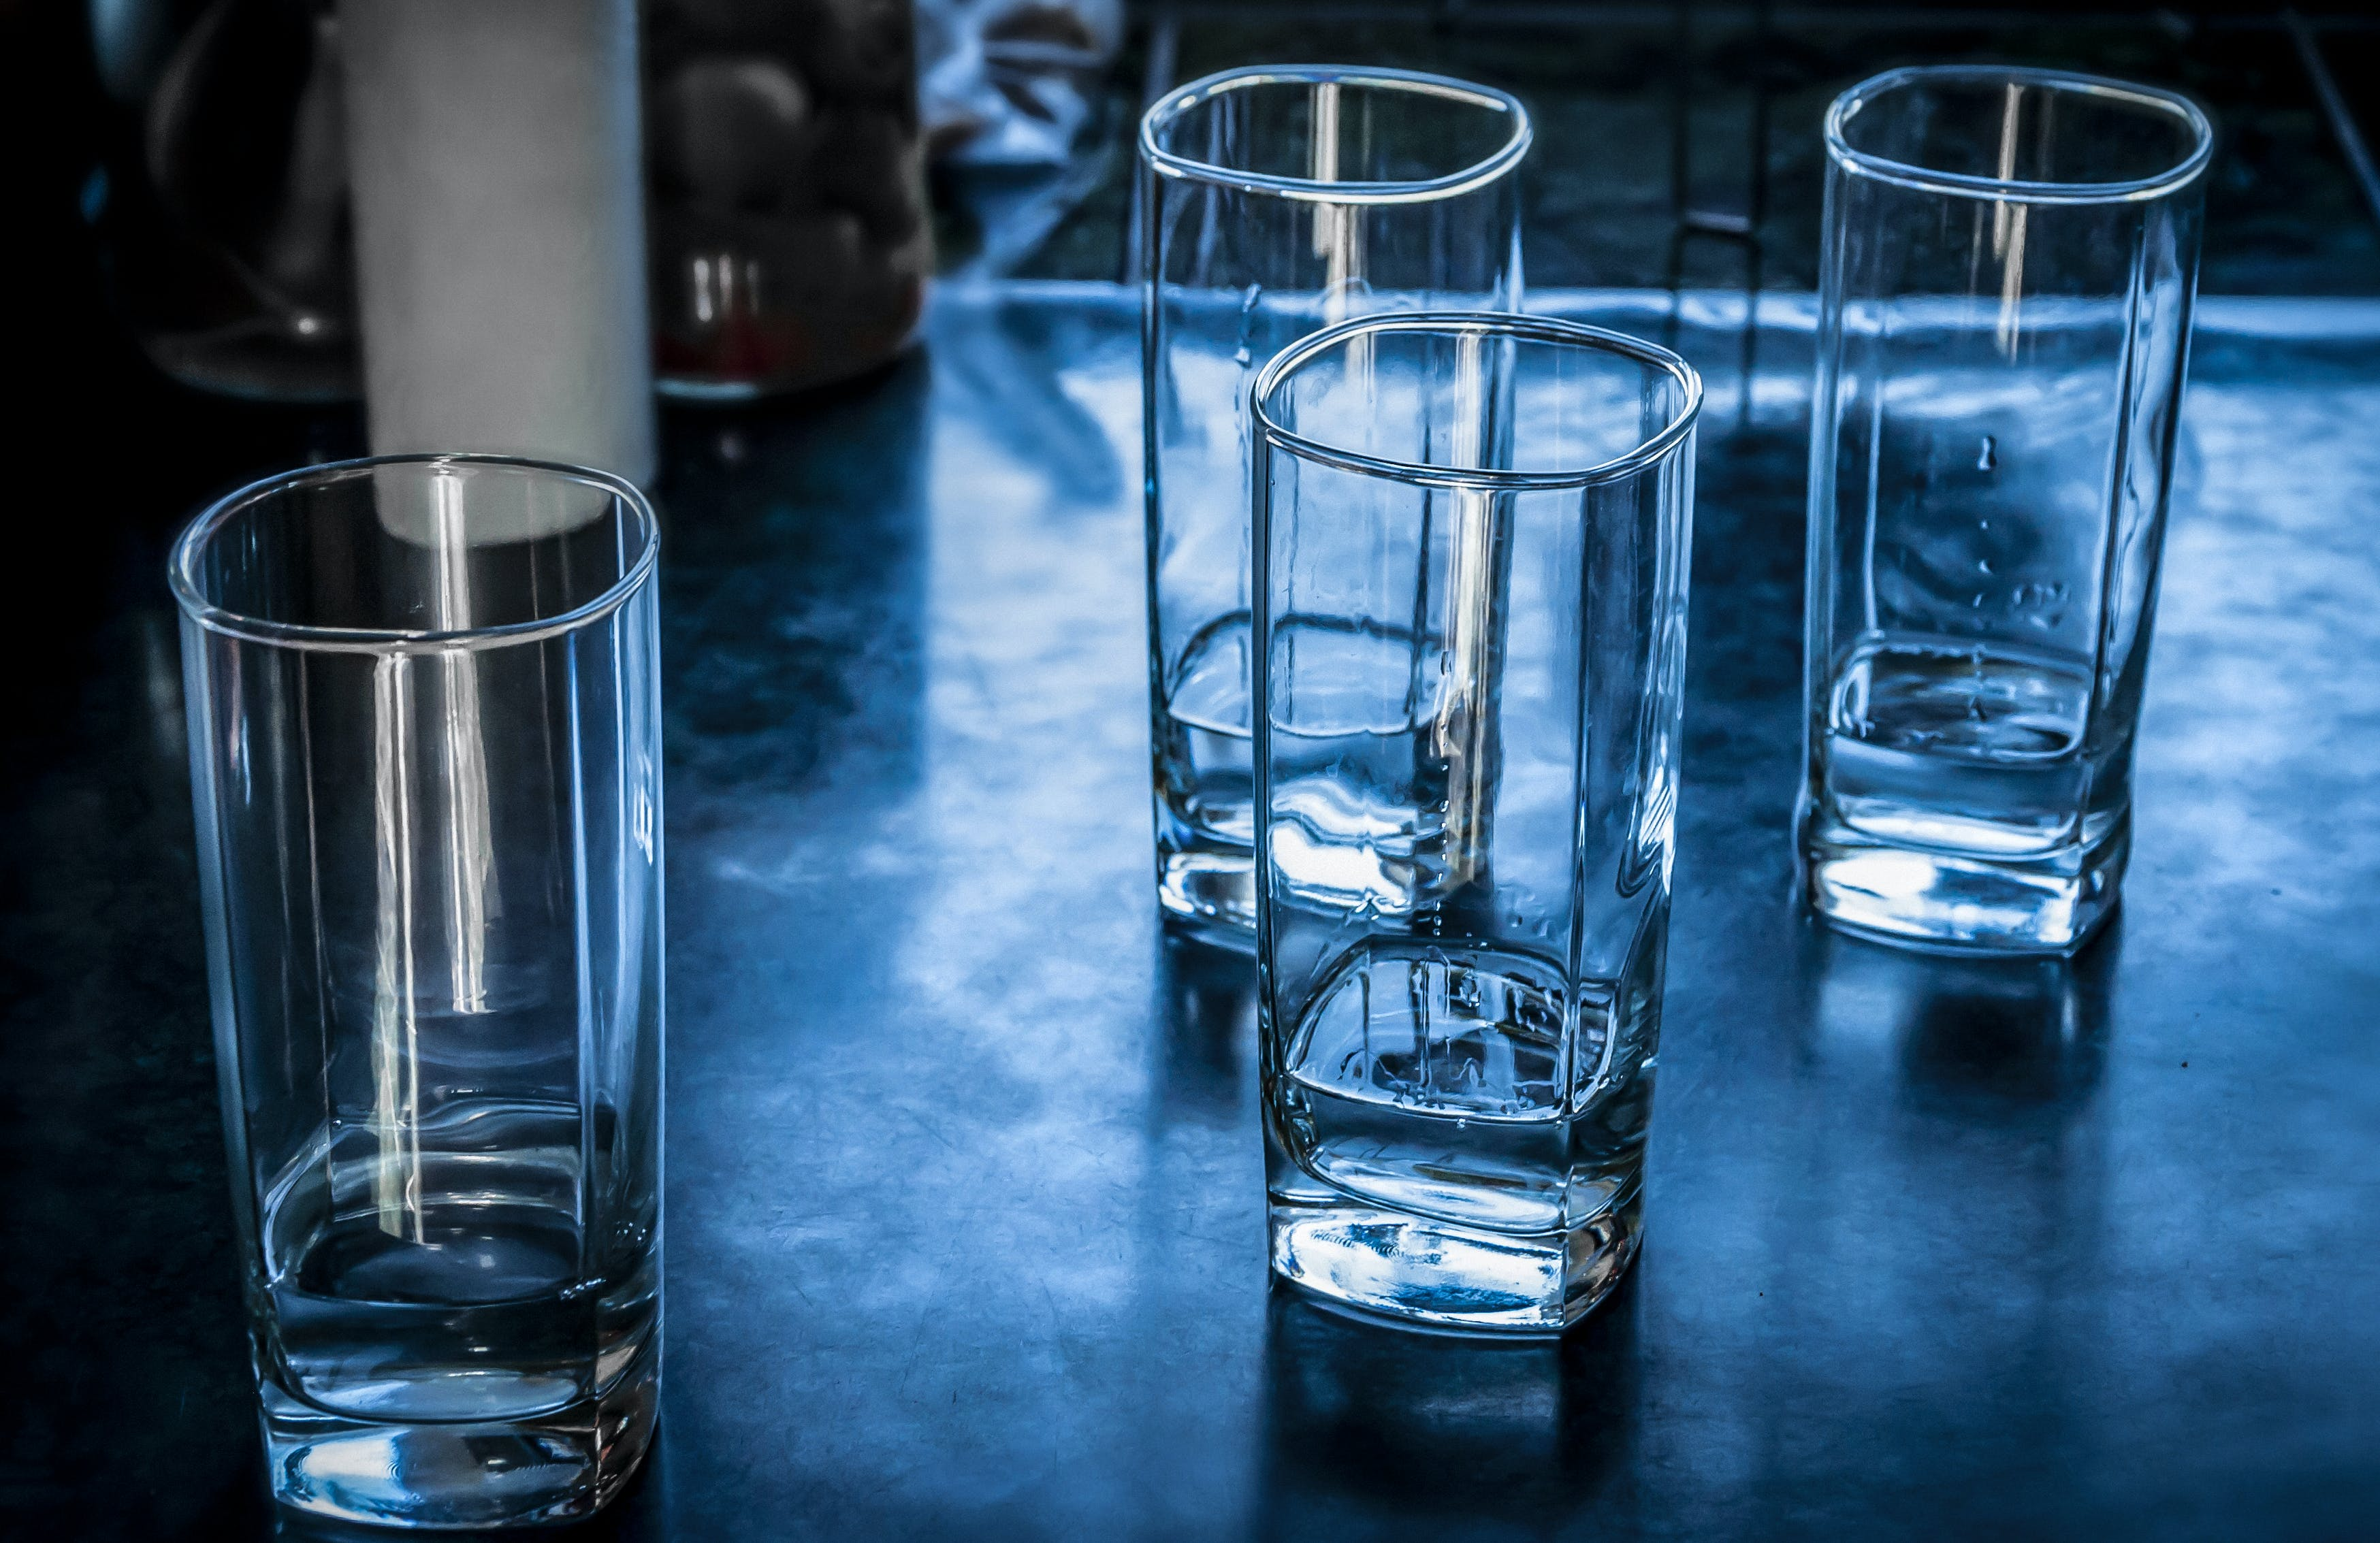 Free stock photo of alcohol, blue, drinking glass, drinks